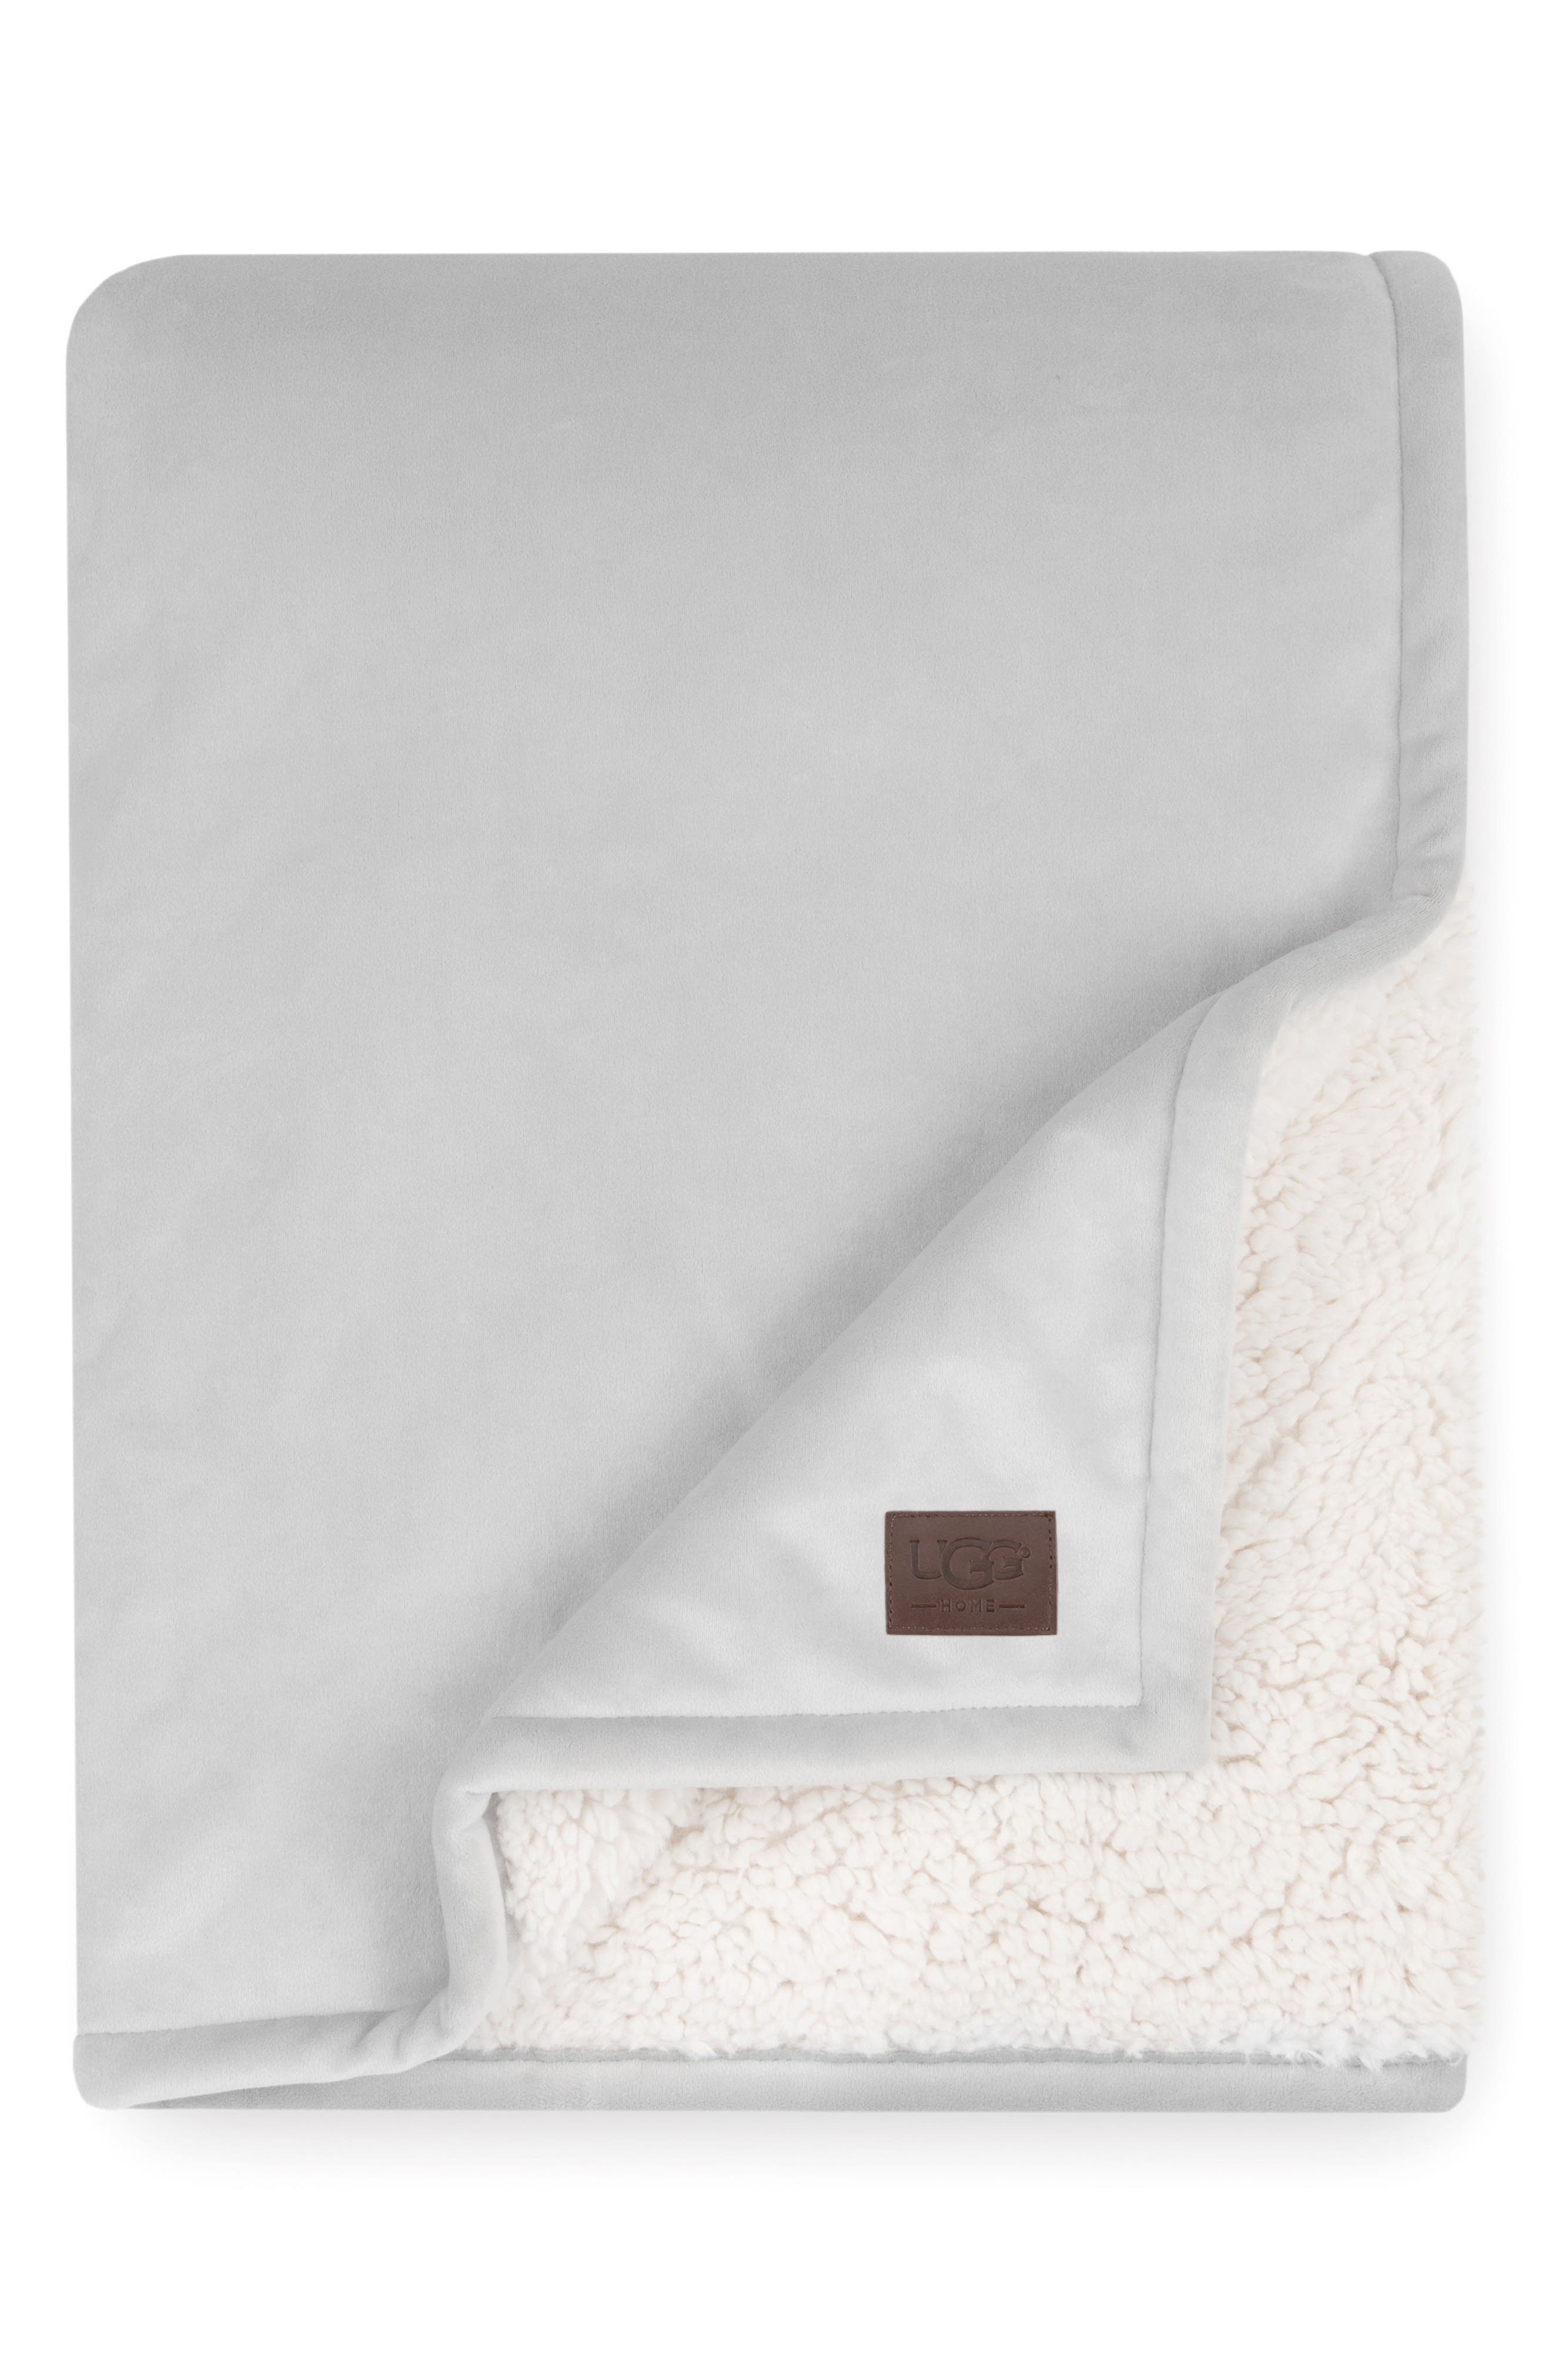 UGG<SUP>®</SUP>, Bliss Fuzzy Throw, Main thumbnail 1, color, SEAL